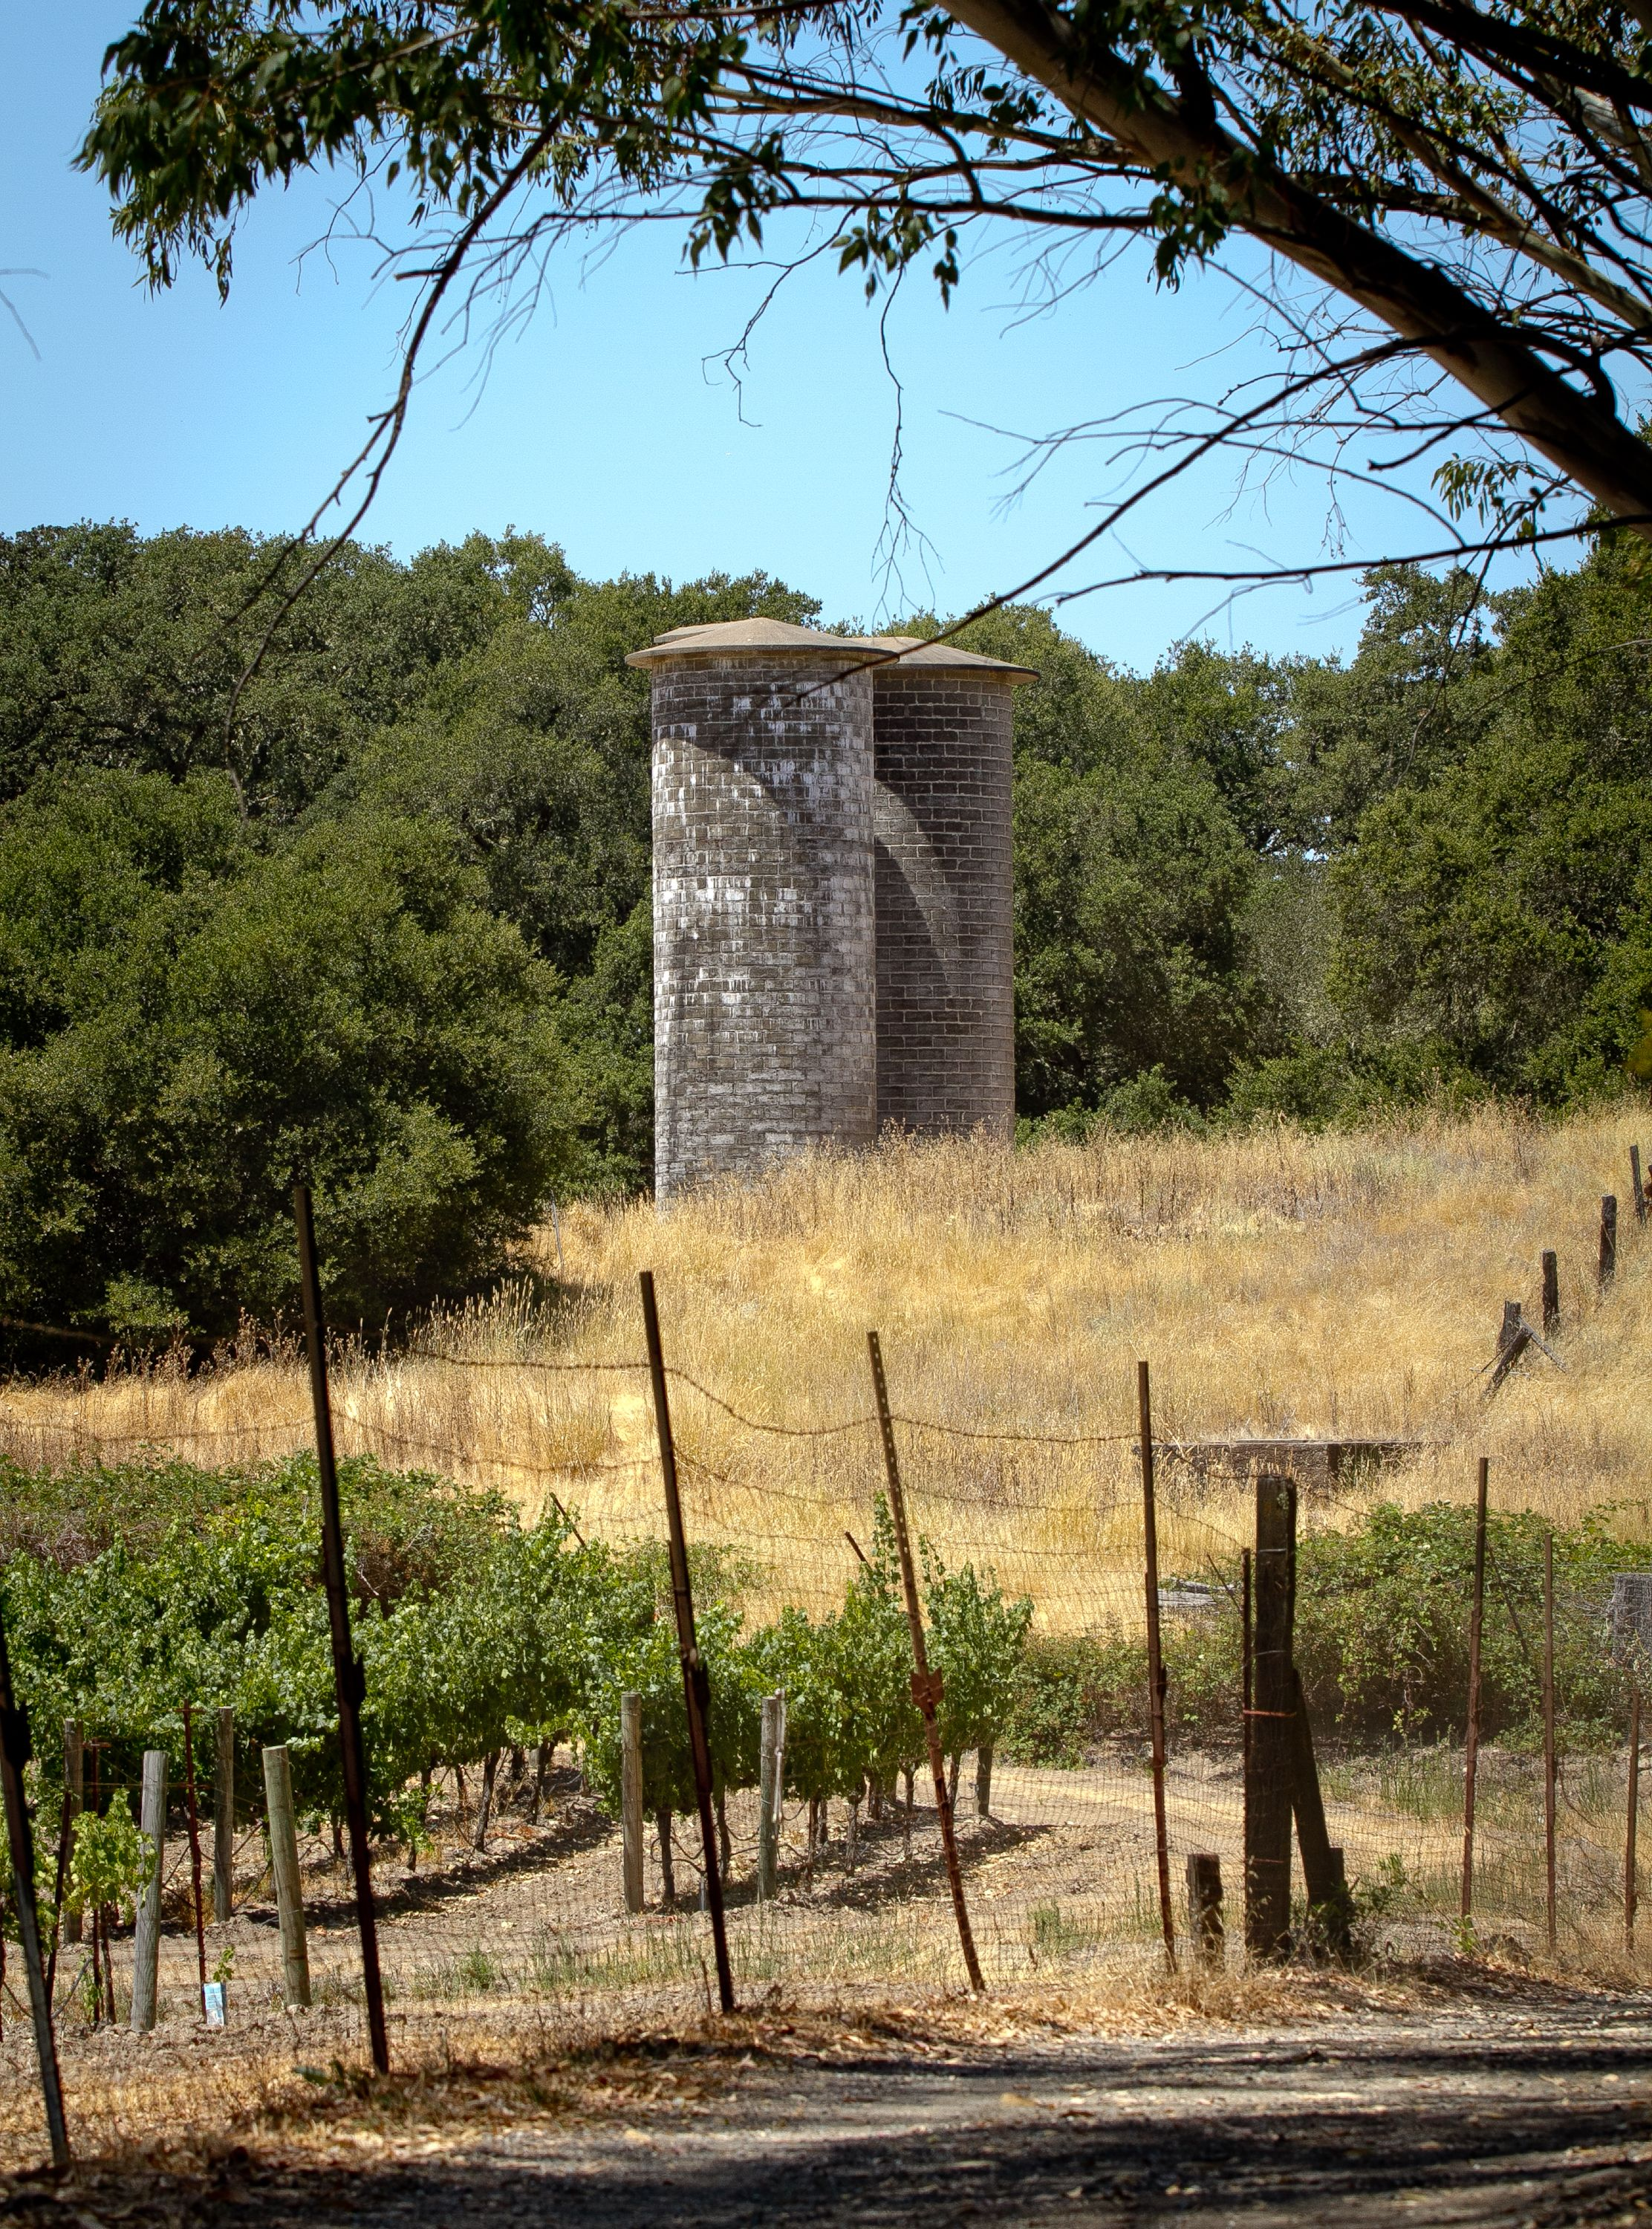 At this 1,400-acre site on Sonoma Mountain in Glen Ellen,you can visit Jack London's home, his grave site and his experimental farm. You can also hike miles of scenic trails.